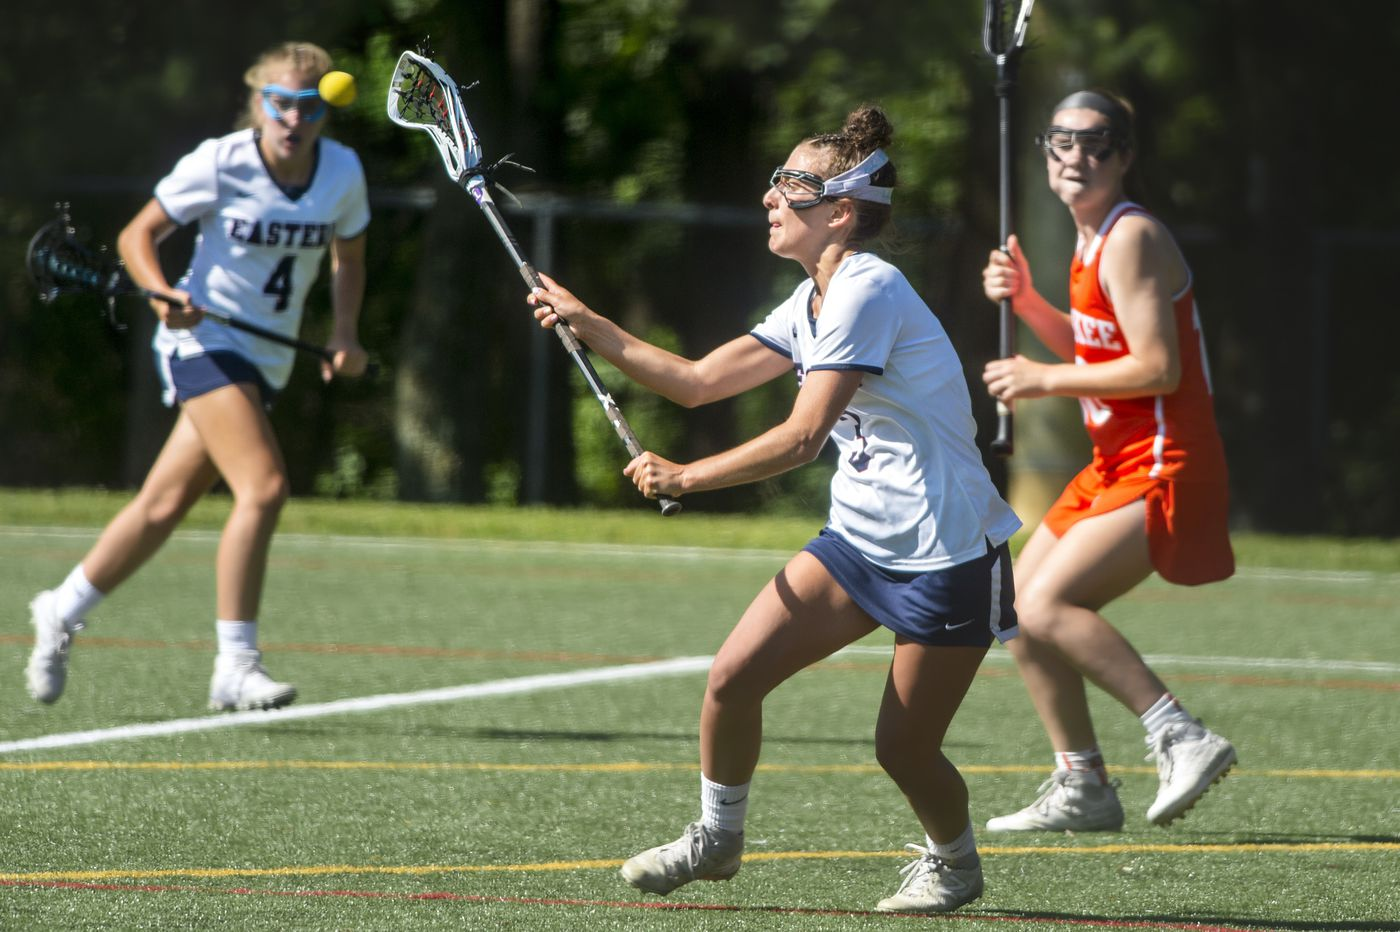 Tori Accardo sets the tone for Eastern girls in lacrosse